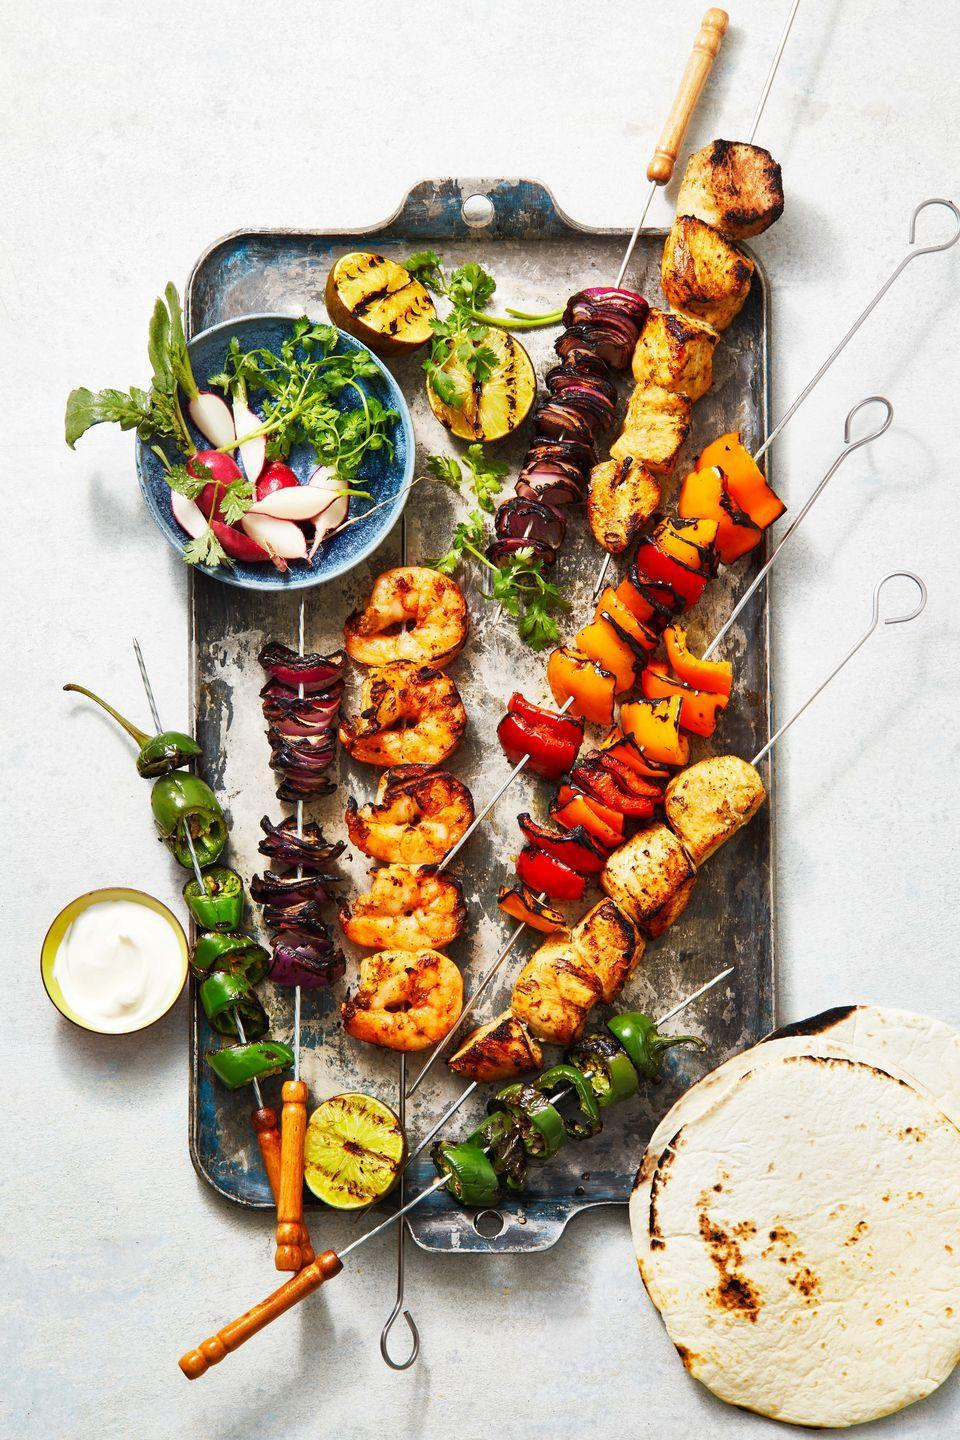 """<p>Serve this with tortillas, limes, sour cream, radishes and cilantro, and you've got a fun, build-your-own <a href=""""https://www.goodhousekeeping.com/food-recipes/g413/great-grilling-recipes/"""" rel=""""nofollow noopener"""" target=""""_blank"""" data-ylk=""""slk:grilling recipe"""" class=""""link rapid-noclick-resp"""">grilling recipe</a> in just about a half hour.</p><p><em><a href=""""https://www.goodhousekeeping.com/food-recipes/a36756280/grilled-chicken-fajitas-recipe/"""" rel=""""nofollow noopener"""" target=""""_blank"""" data-ylk=""""slk:Get the recipe for Grilled Chicken Fajitas »"""" class=""""link rapid-noclick-resp"""">Get the recipe for Grilled Chicken Fajitas »</a></em></p>"""